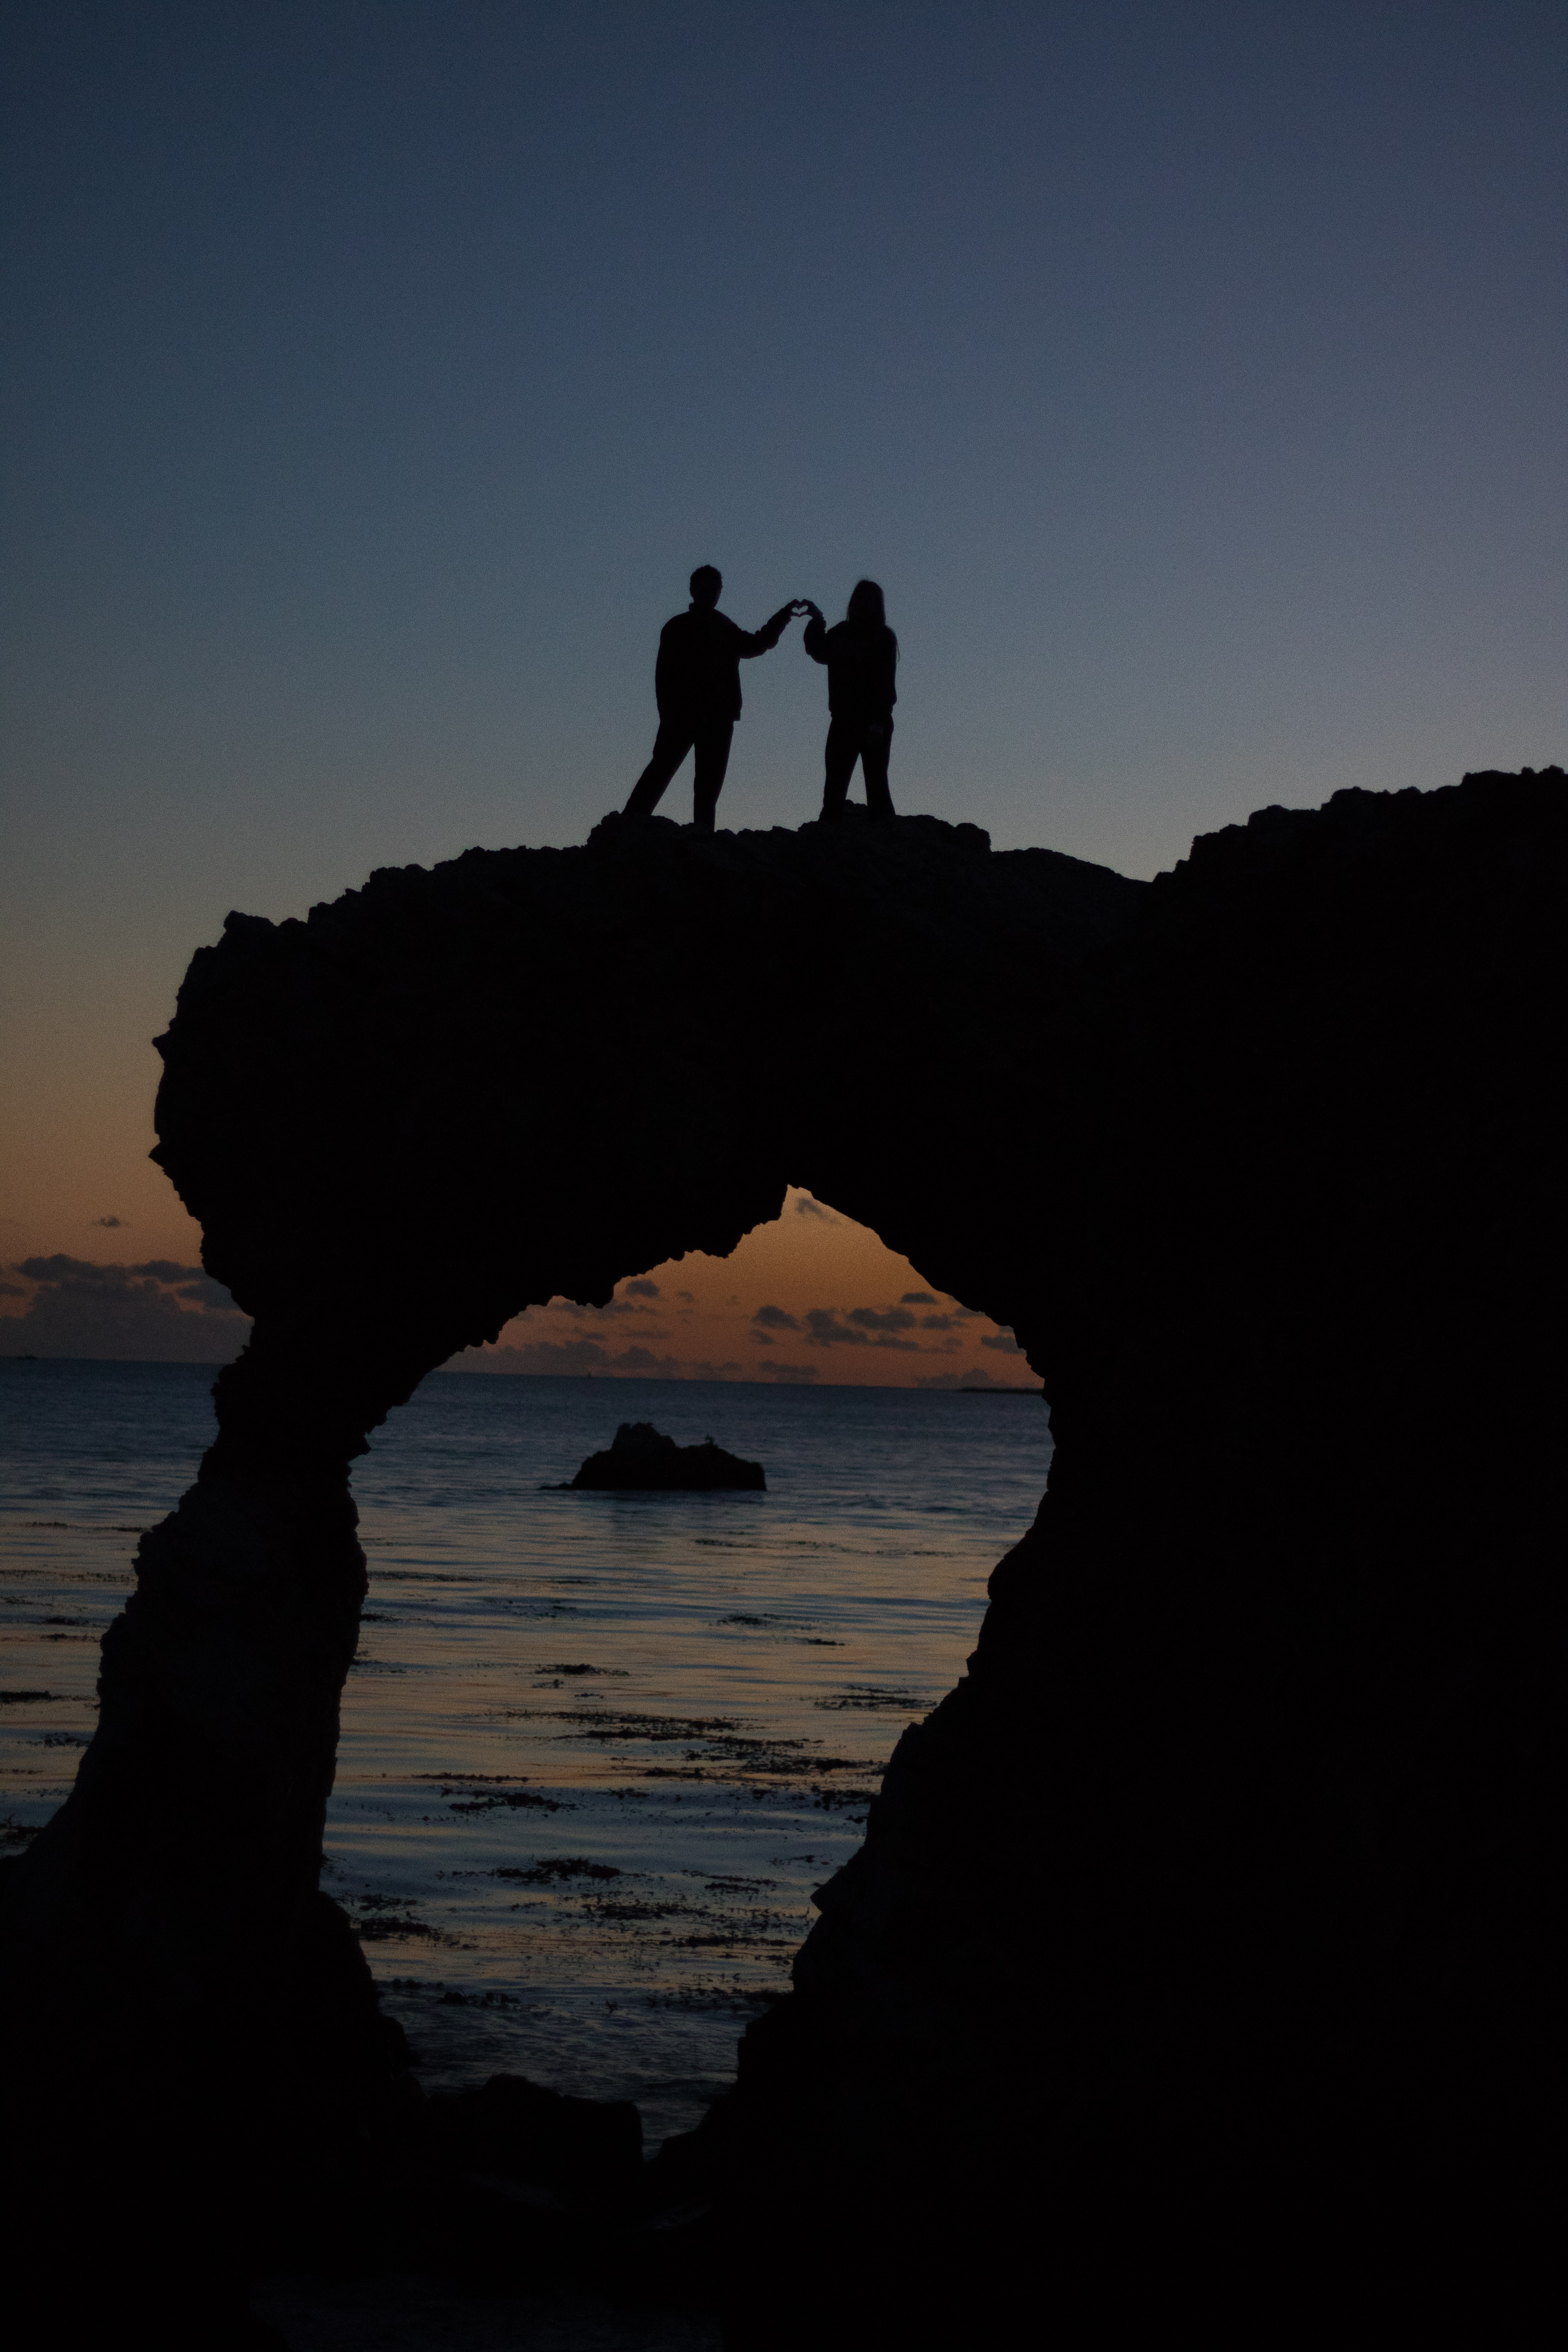 silhouette of two persons atop a rock formation near the ocean